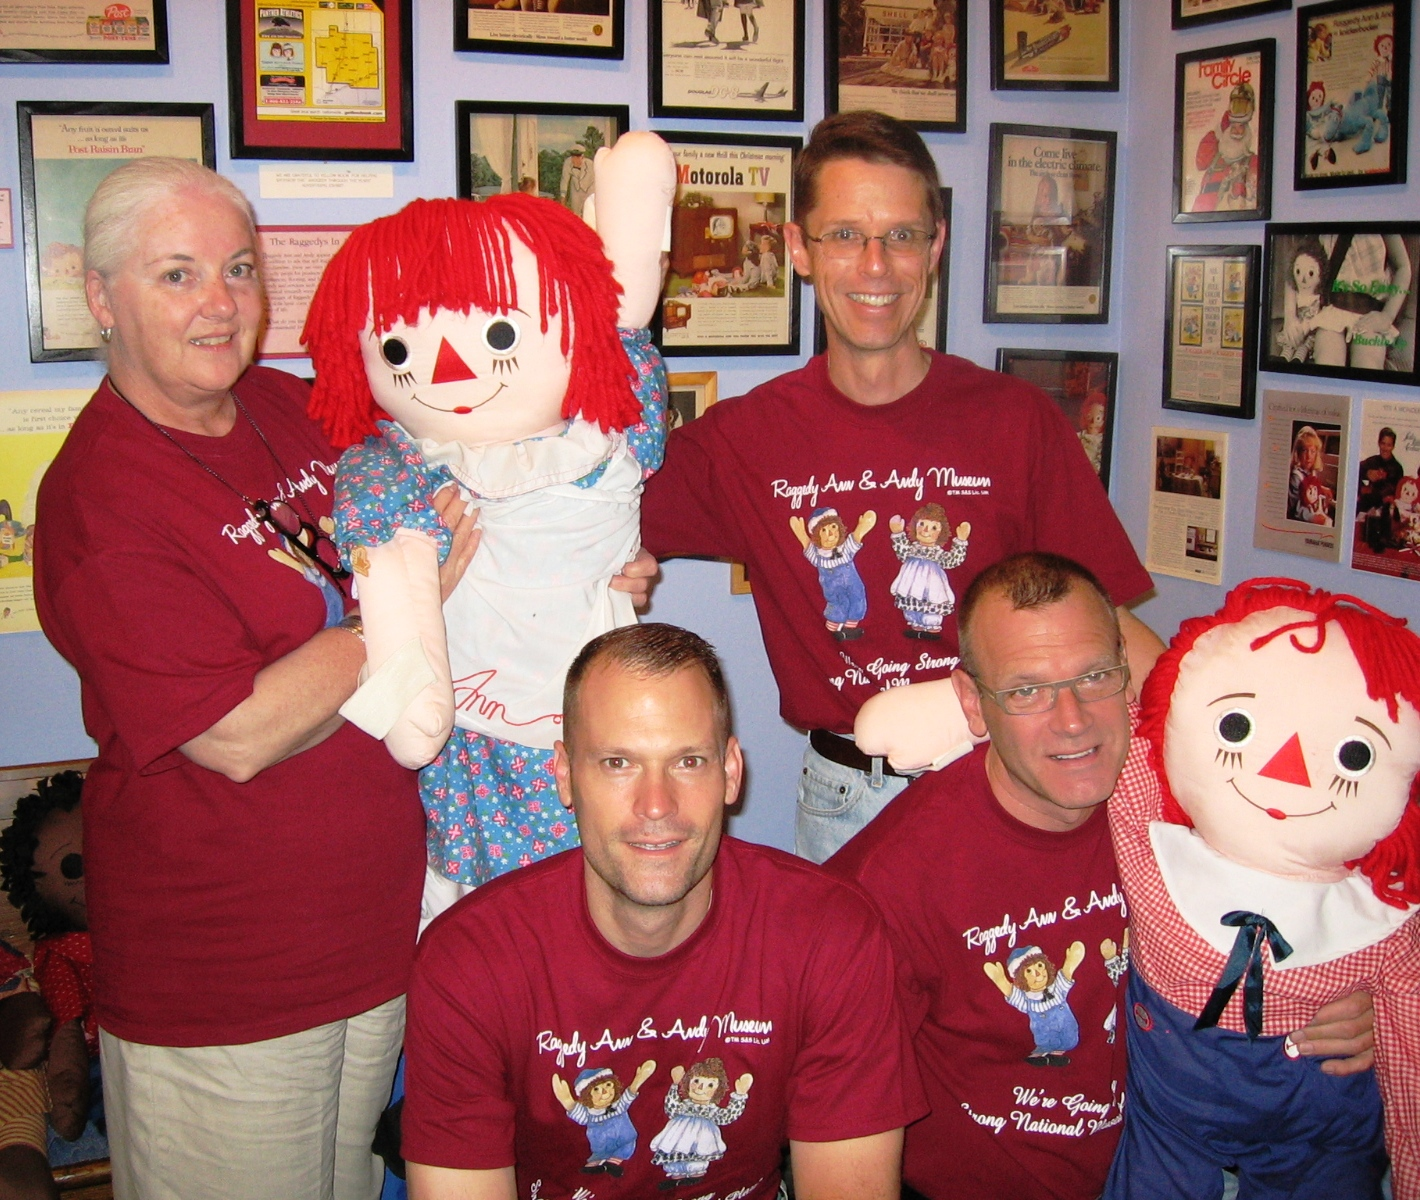 Naturally, we all wore our souvenir Raggedy Ann & Andy Museum T-shirts for the occasion.